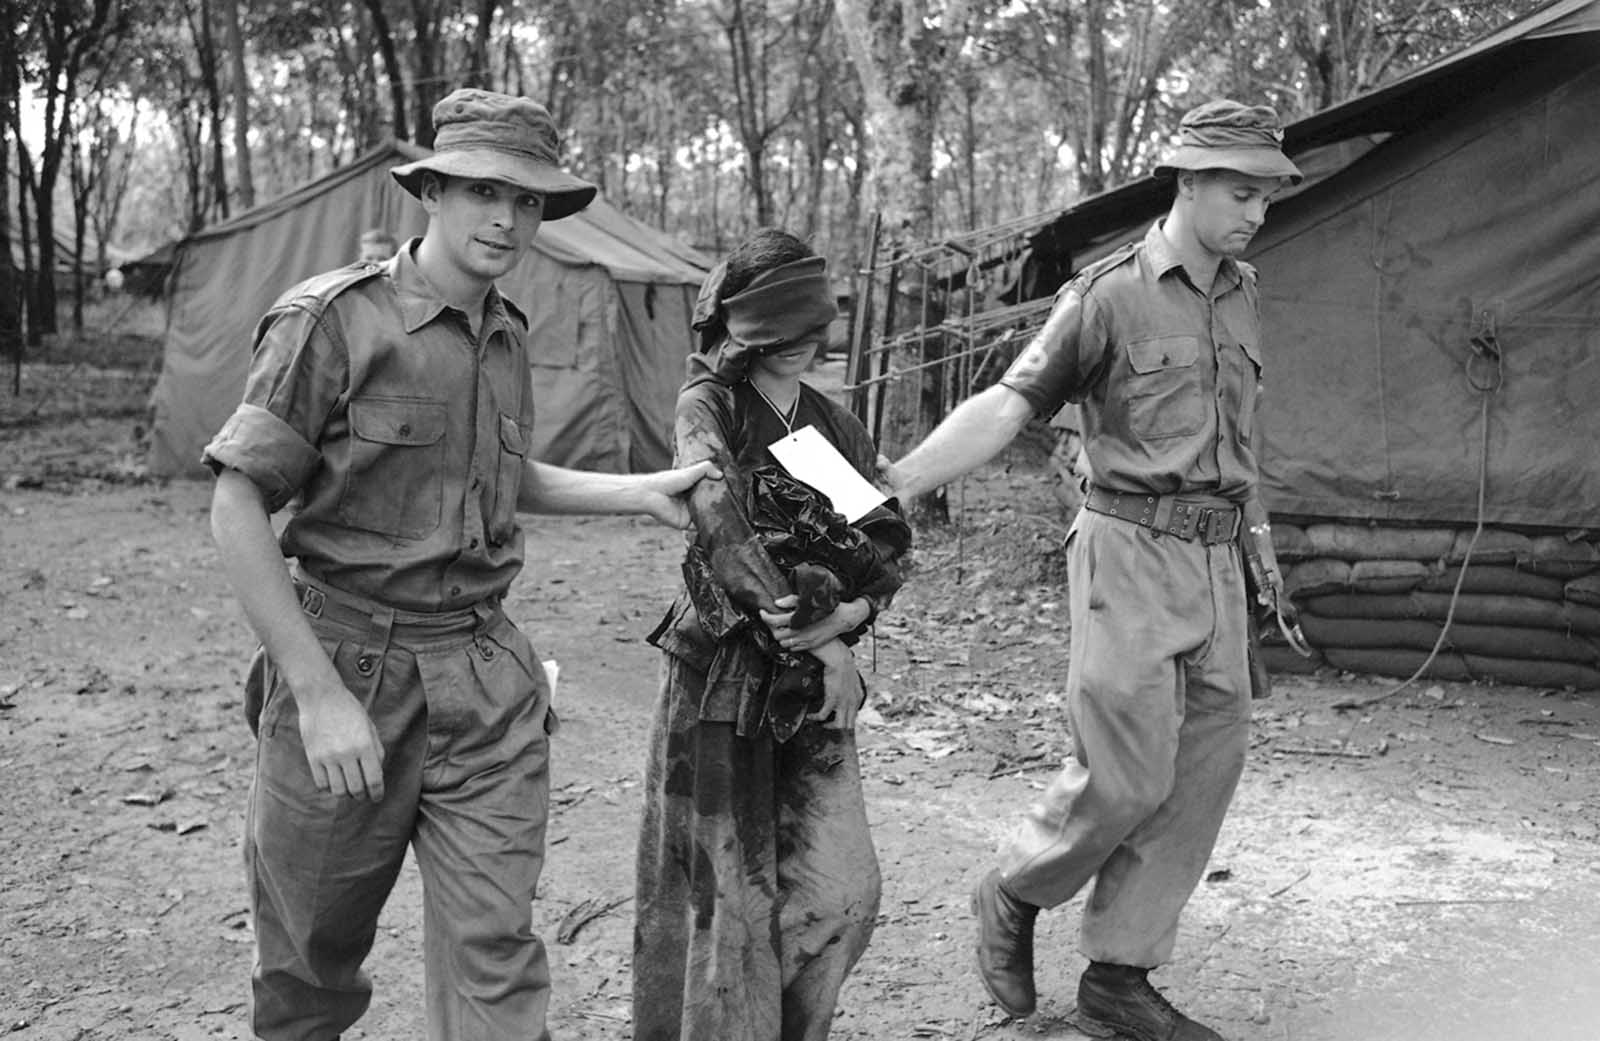 A Vietnamese girl, 23 years old, was captured by an Australian patrol 30 feet below ground at the end of a maze of tunnels some 10 miles west of the headquarters of the Australian task force (40 miles southeast of Saigon). The woman was crouched over a World War II radio set. About seven male Viet Cong took off when the Australians appeared—but the woman remained and appeared to be trying to conceal the radio set. She was taken back to the Australian headquarters where she told under sharp interrogation (which included a